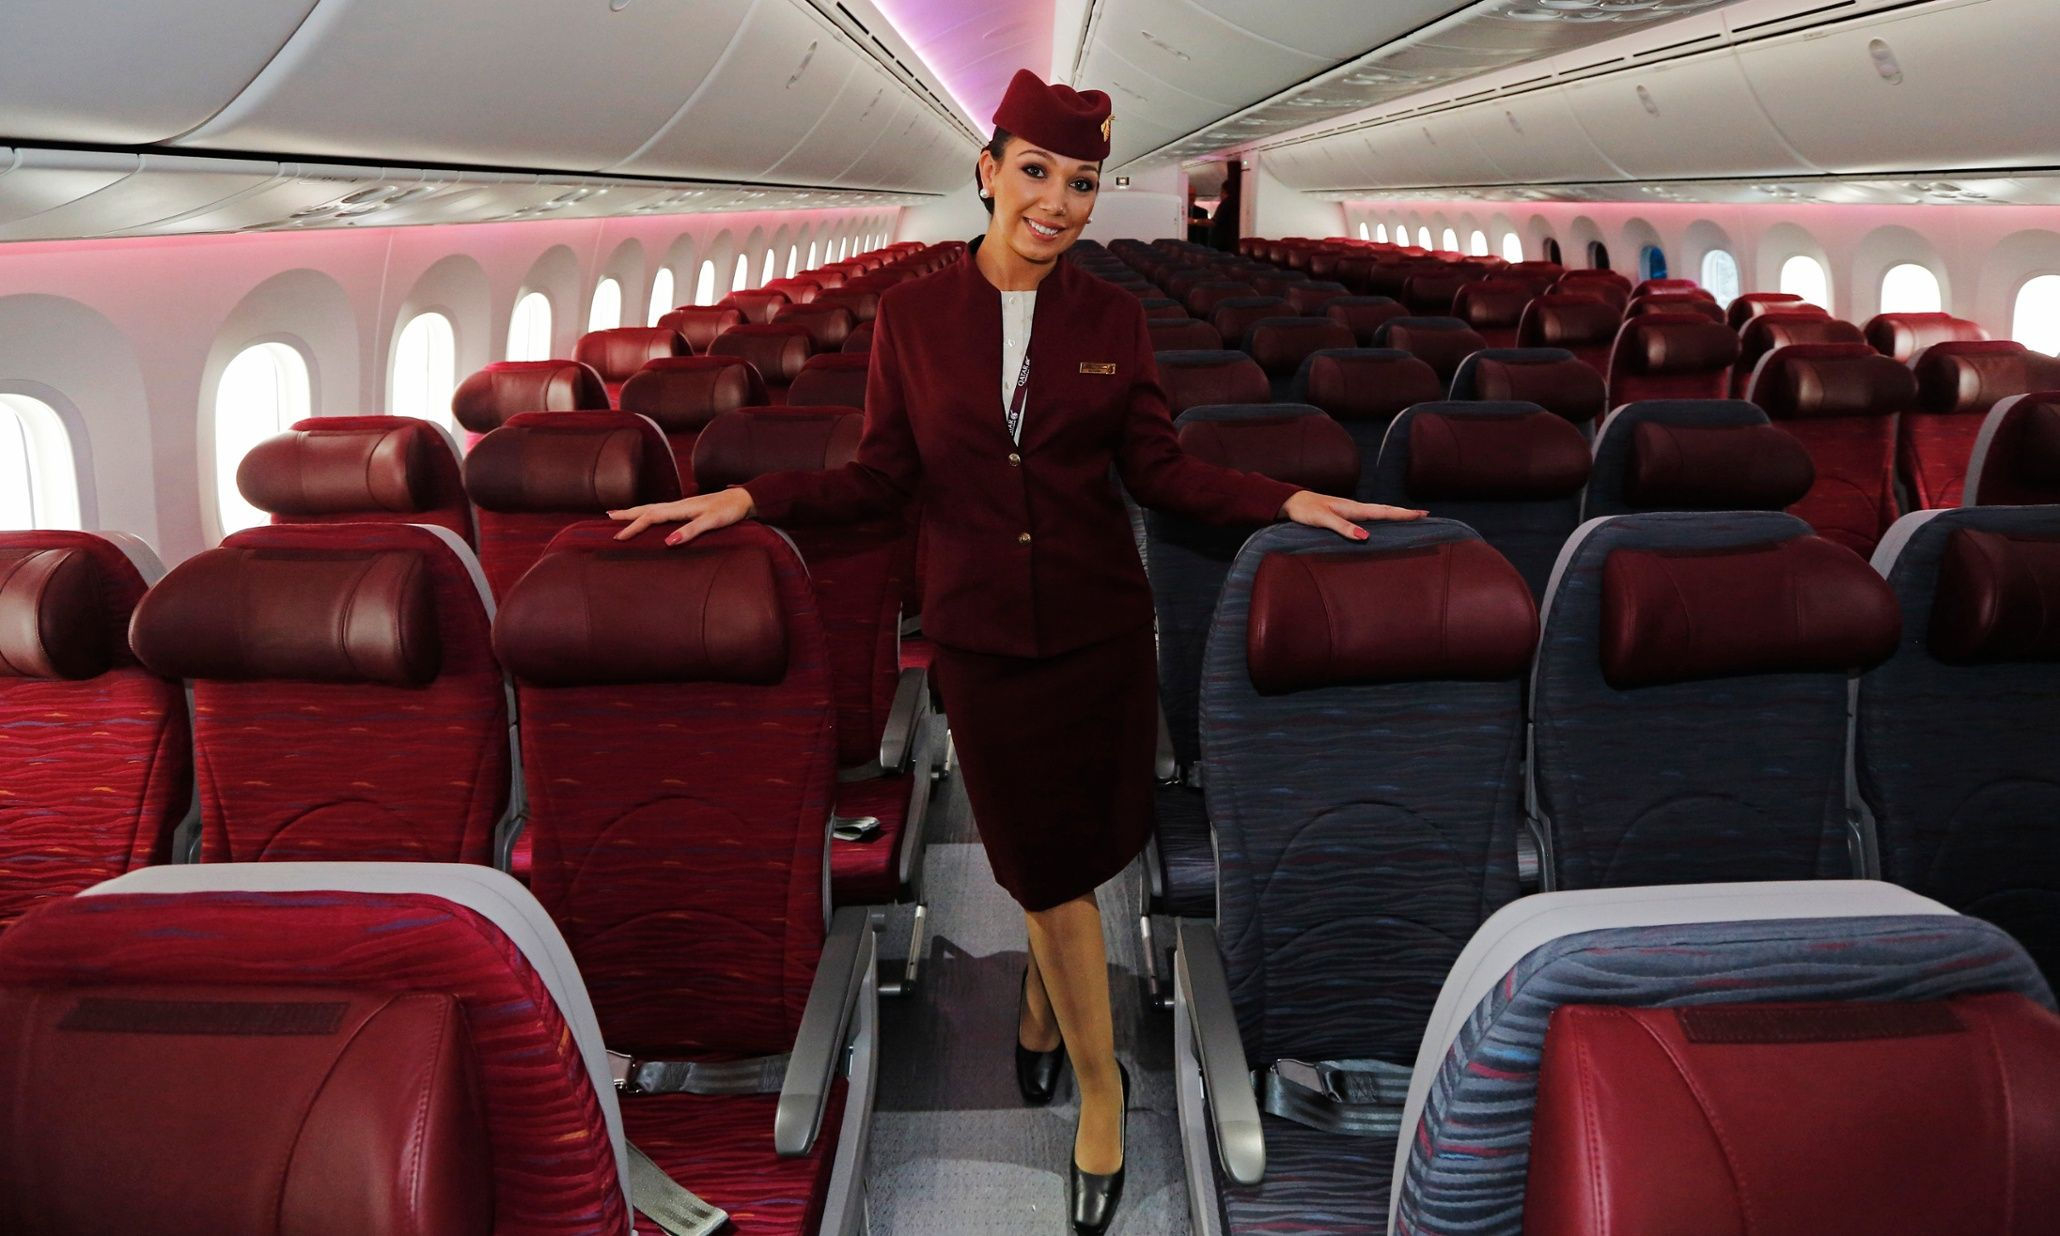 best images about classy qatar flight attendants on 17 best images about classy qatar flight attendants make up tutorial assessment and ios app